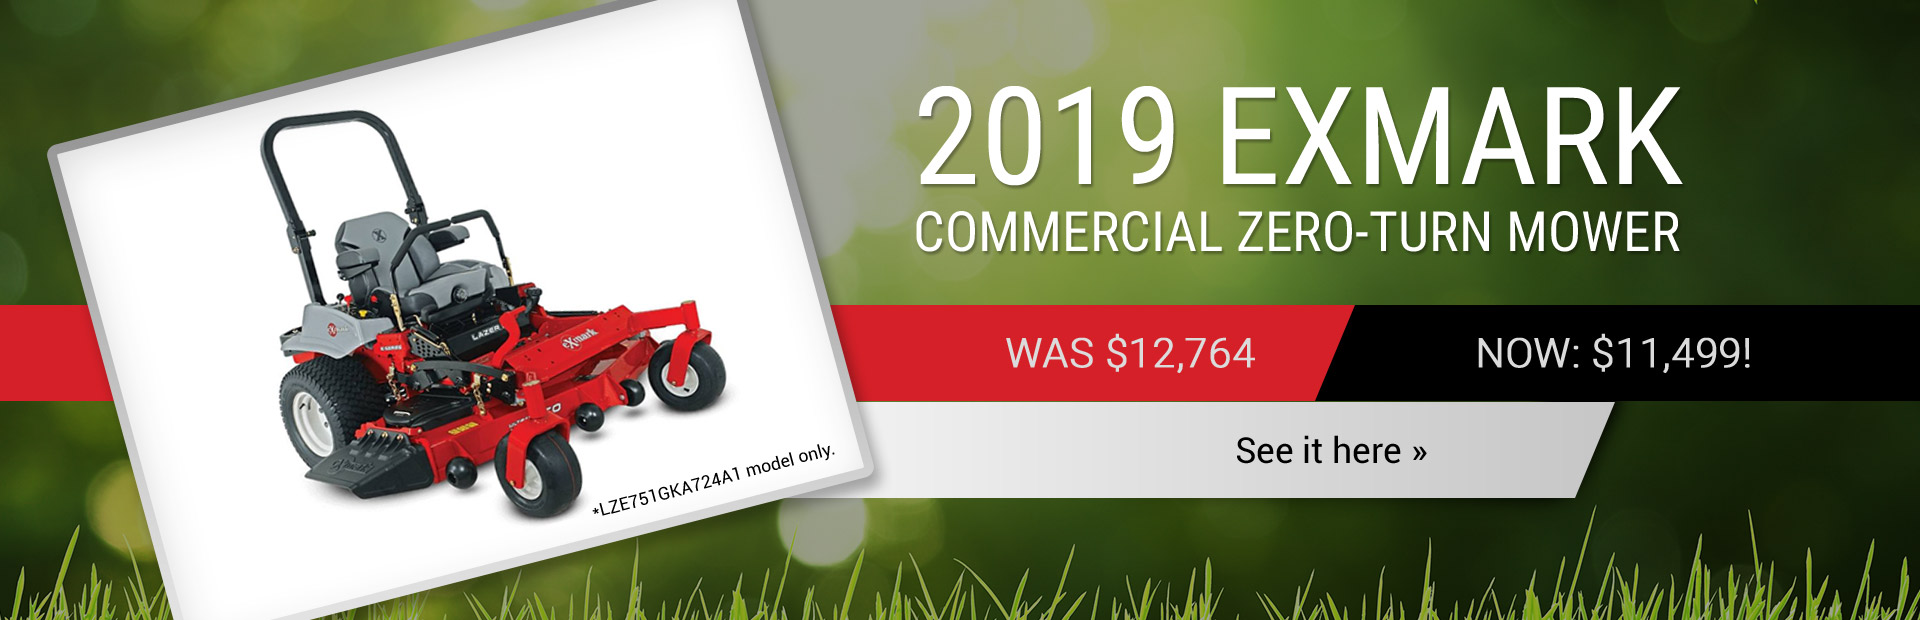 2018 Exmark Commercial Zero-Turn Mower: Get yours for just $8,999!